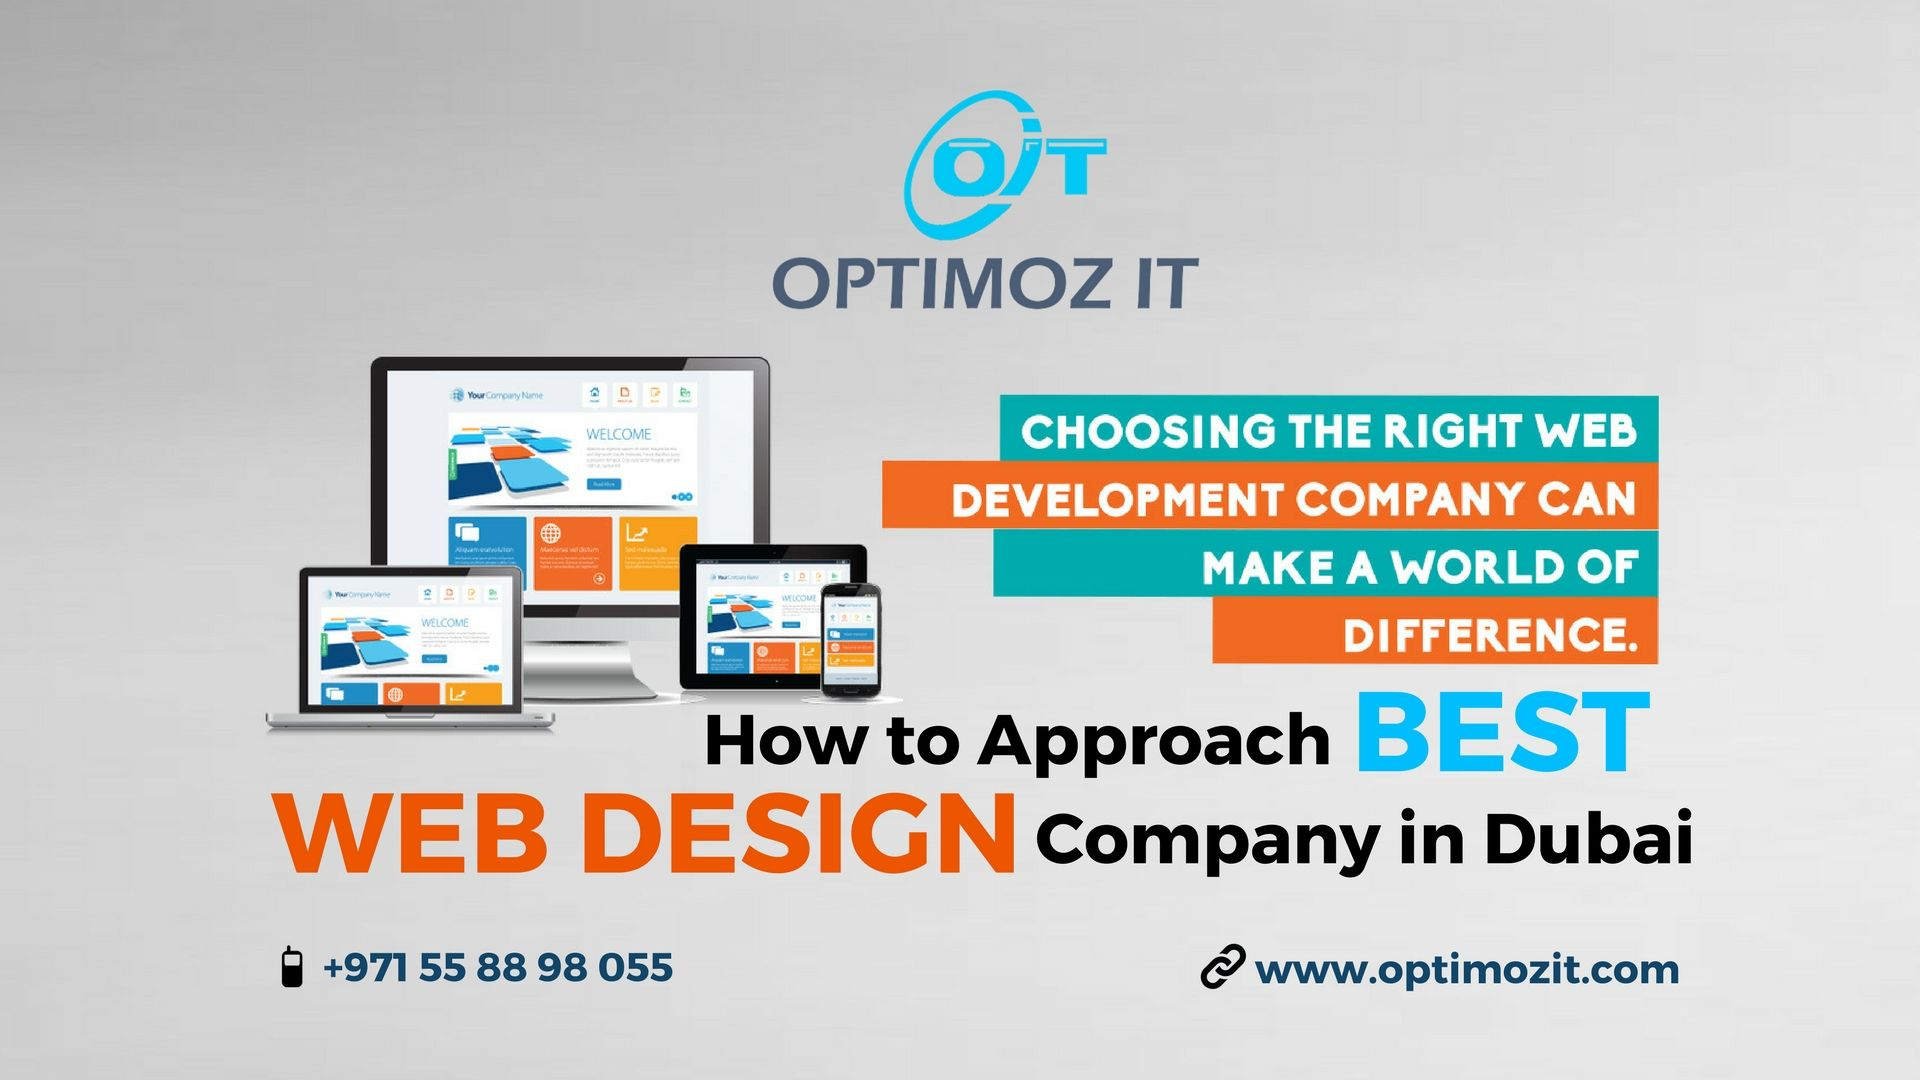 Best Web Design Company In Dubai Learn How To Approach It Web Design Company Best Web Design Web Design